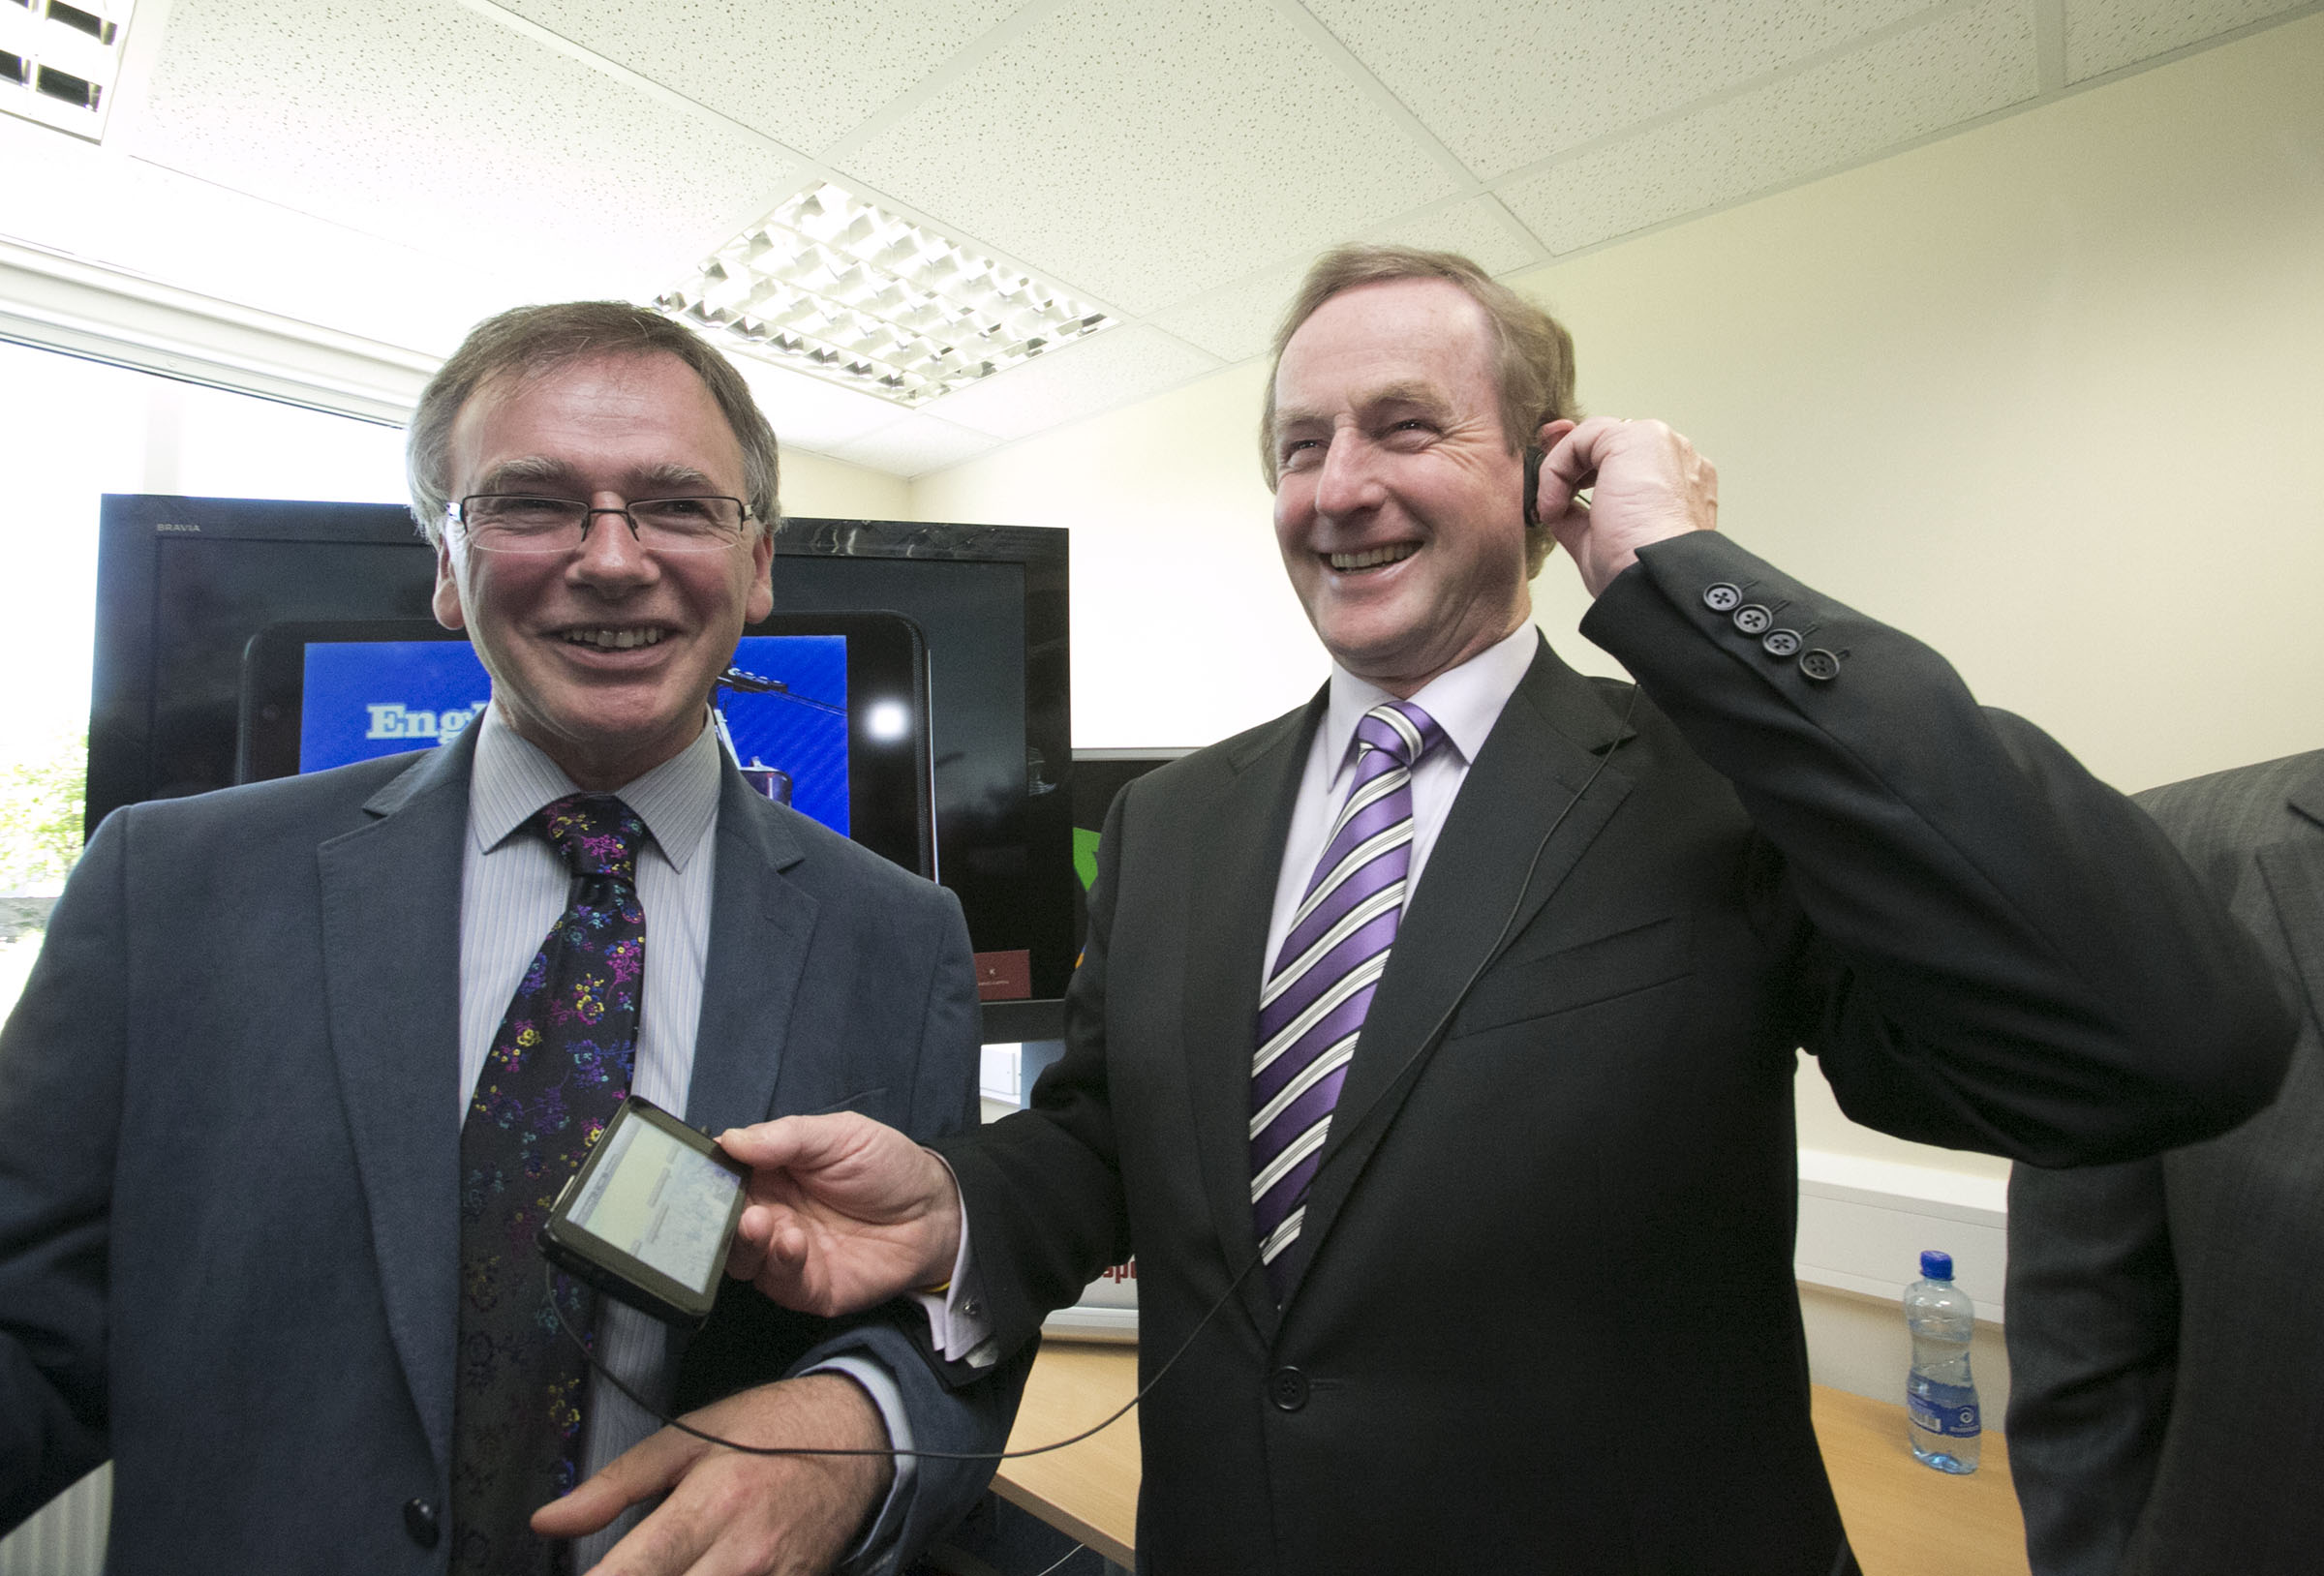 Pictured at the opening are: Dr. Willie Donnelly, Head of Research at WIT and An Taoiseach, Mr. Enda Kenny T.D.